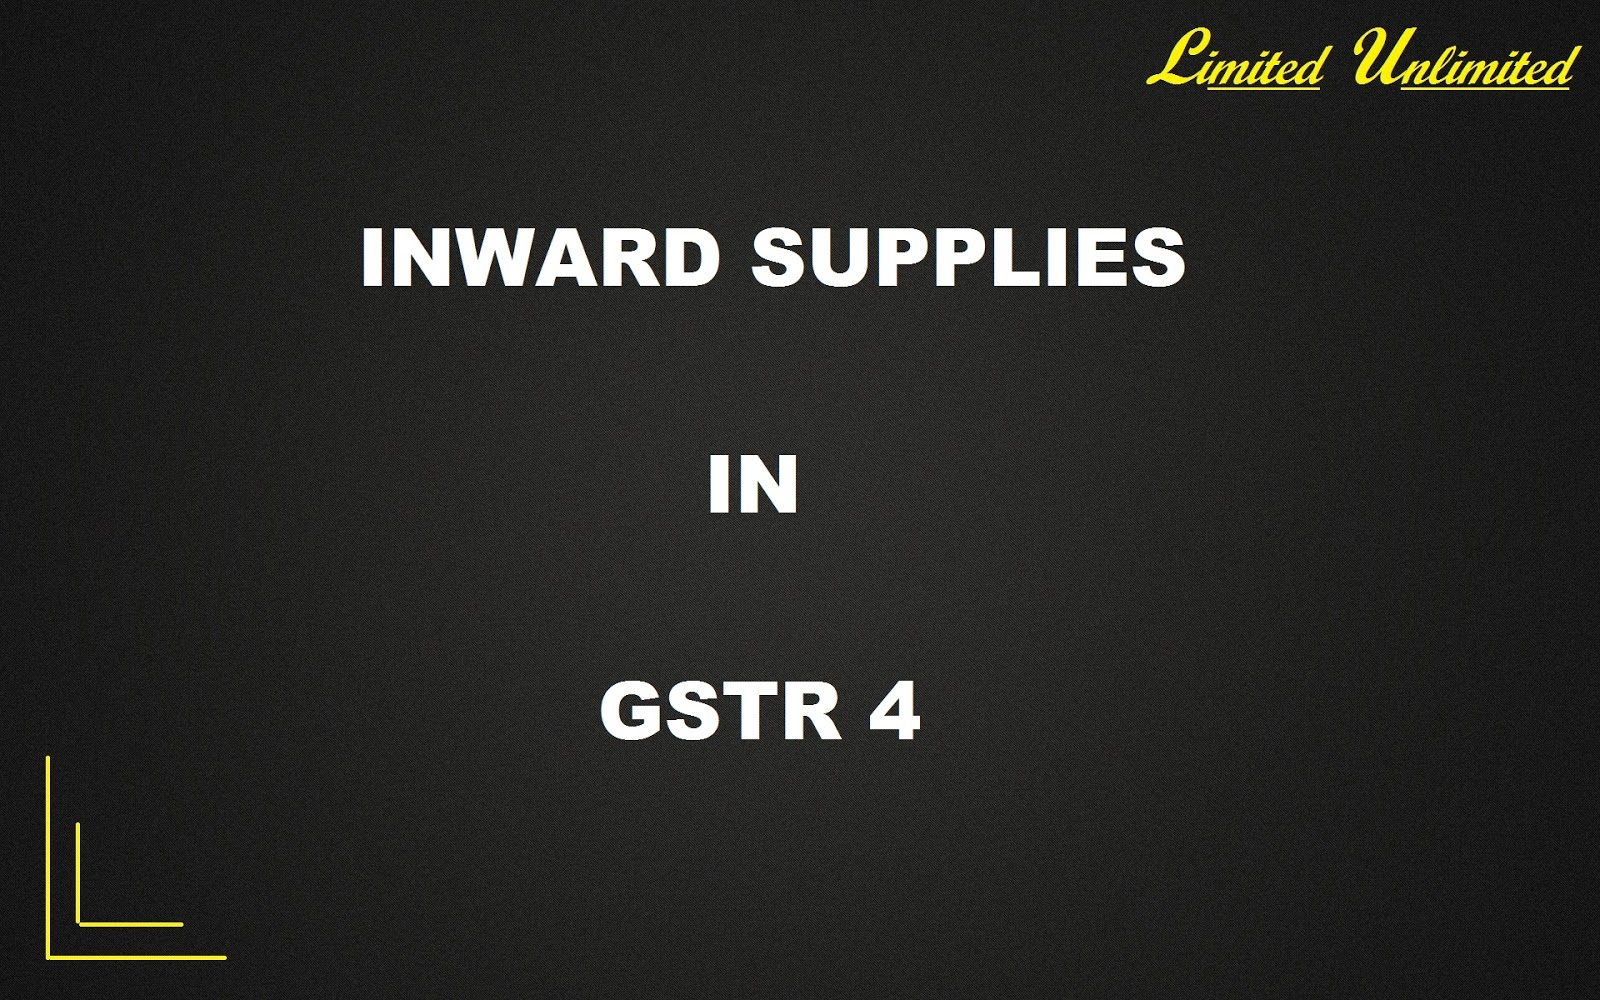 Inward Supplies (Purchases) in GSTR-4 & information about